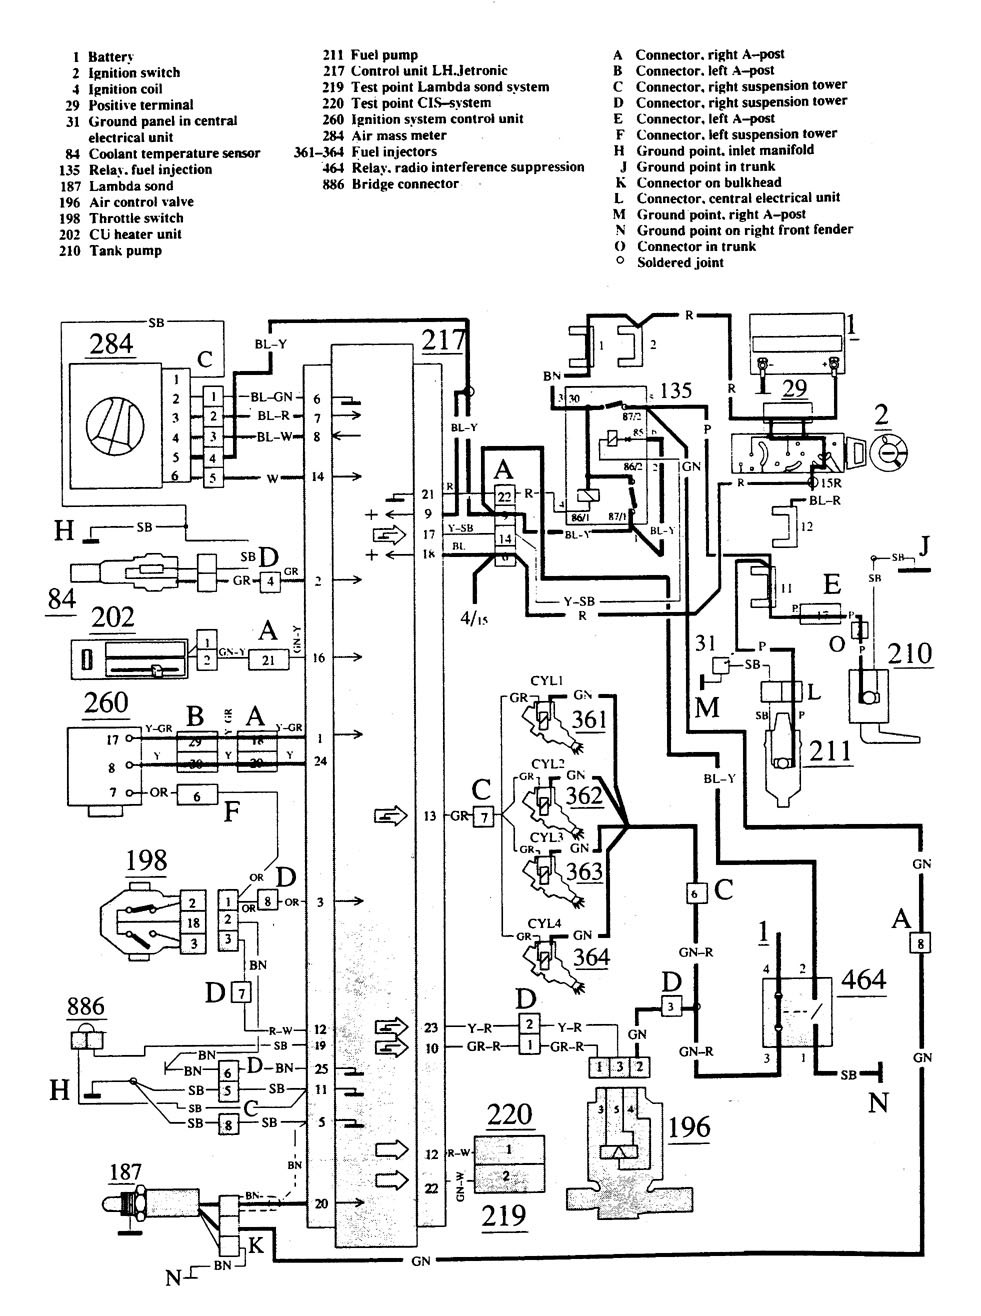 volvo 240 wiring diagram 1988 volvo 740  1988 1989  wiring diagrams fuel controls  volvo 740  1988 1989  wiring